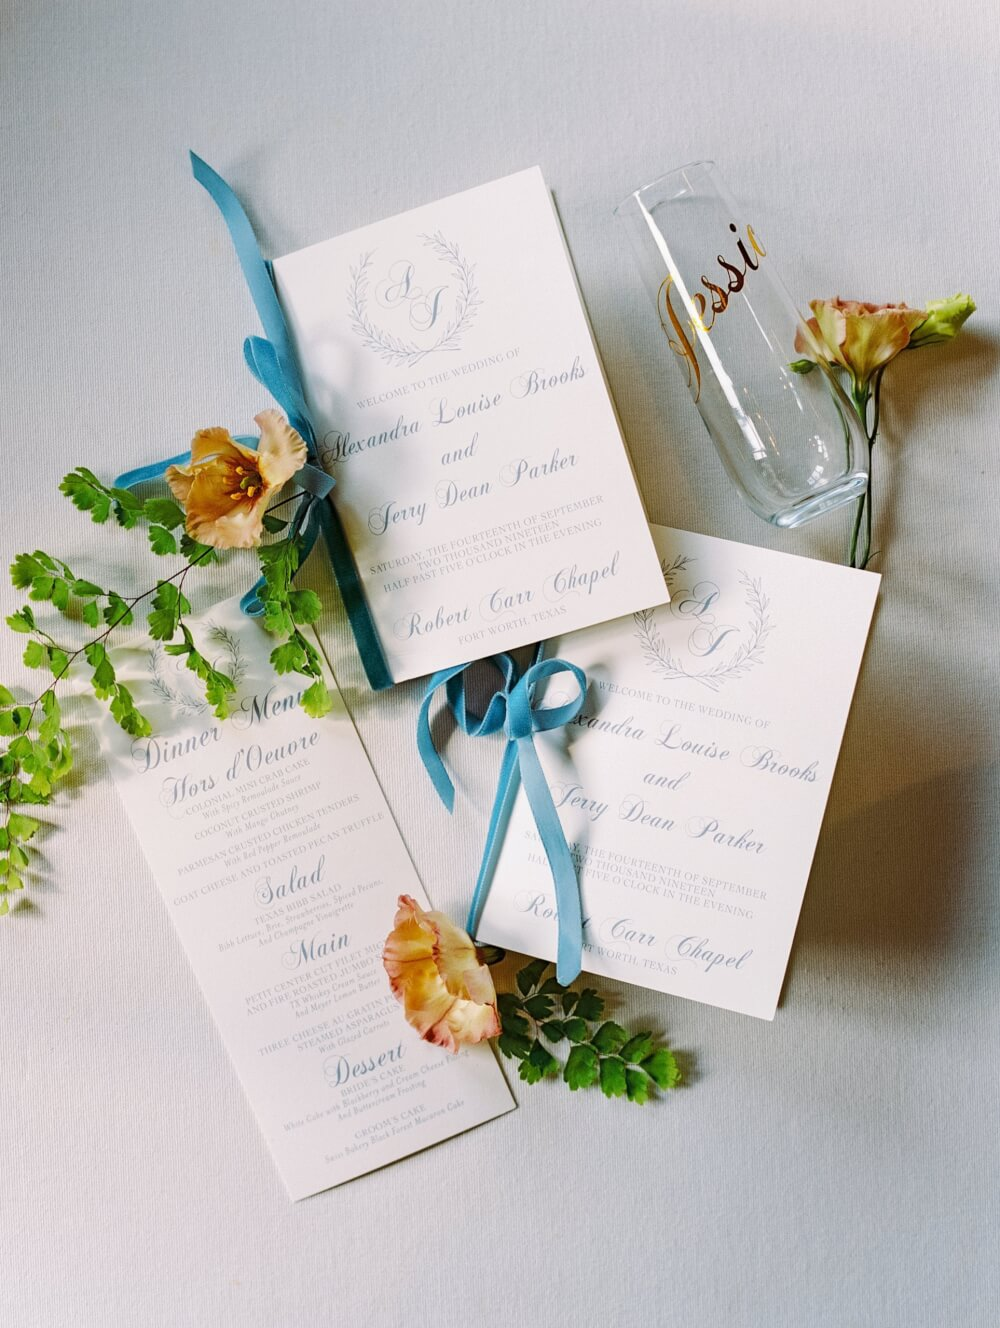 Becca Lea Photography, Fort Worth Wedding, Grit & Gold Events, Robert Carr Chapel, Colonial Country Club, De Ma Fille Bridal Boutique, Hayley Paige bridal, Q the MUA, Pretty Post Calligraphy, Something Pretty Floral, Marquee Rentals, Creme de la creme bakery, Intensity Band, Company N Films